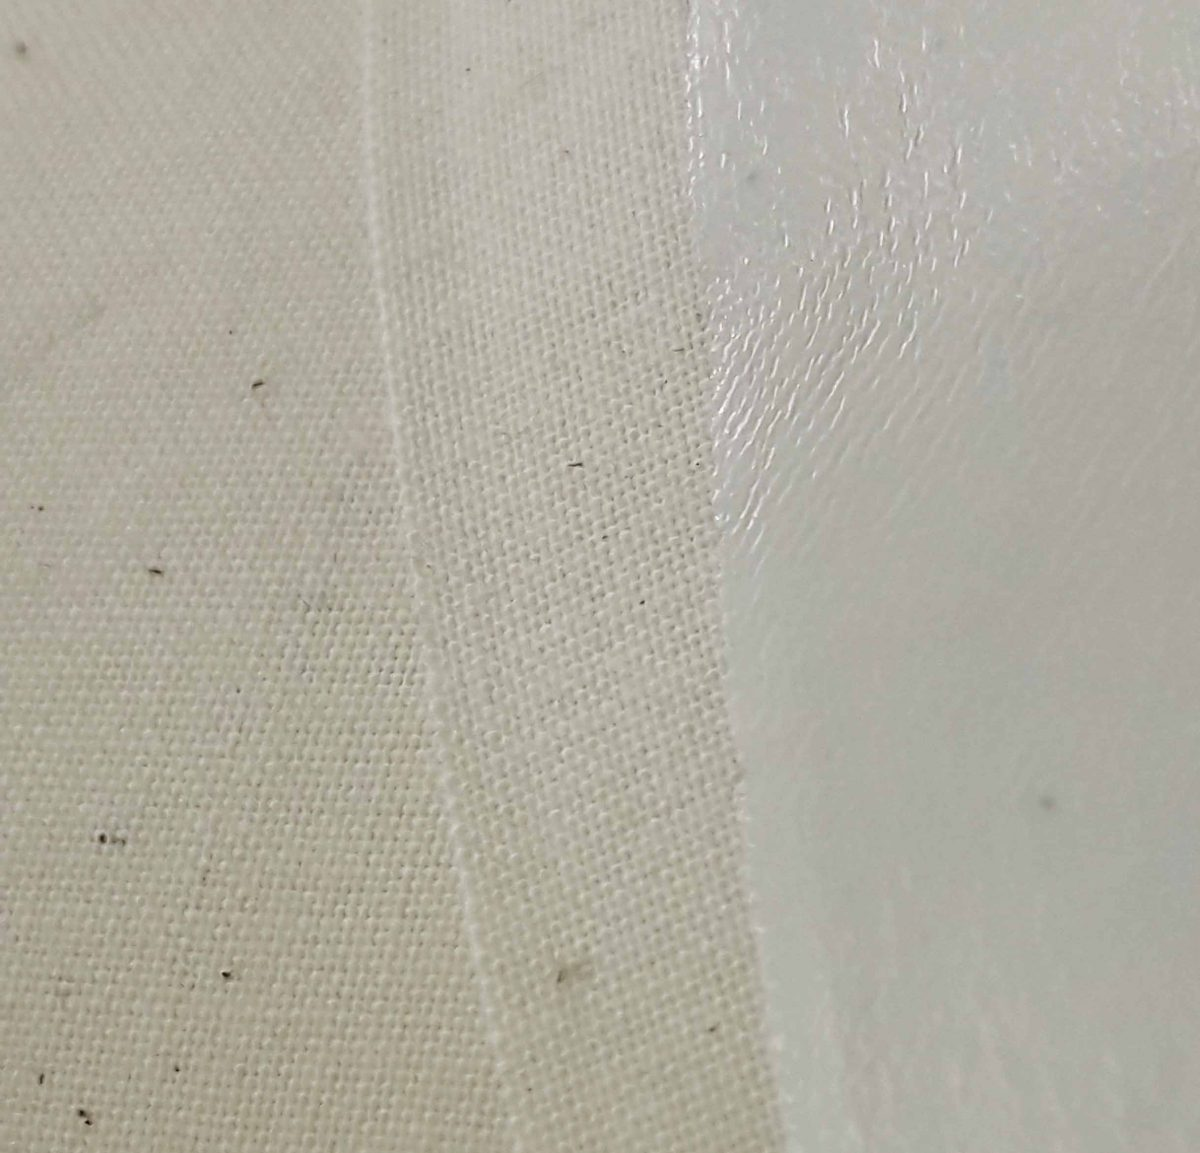 Waterproof Biodegradable Calico Fabric